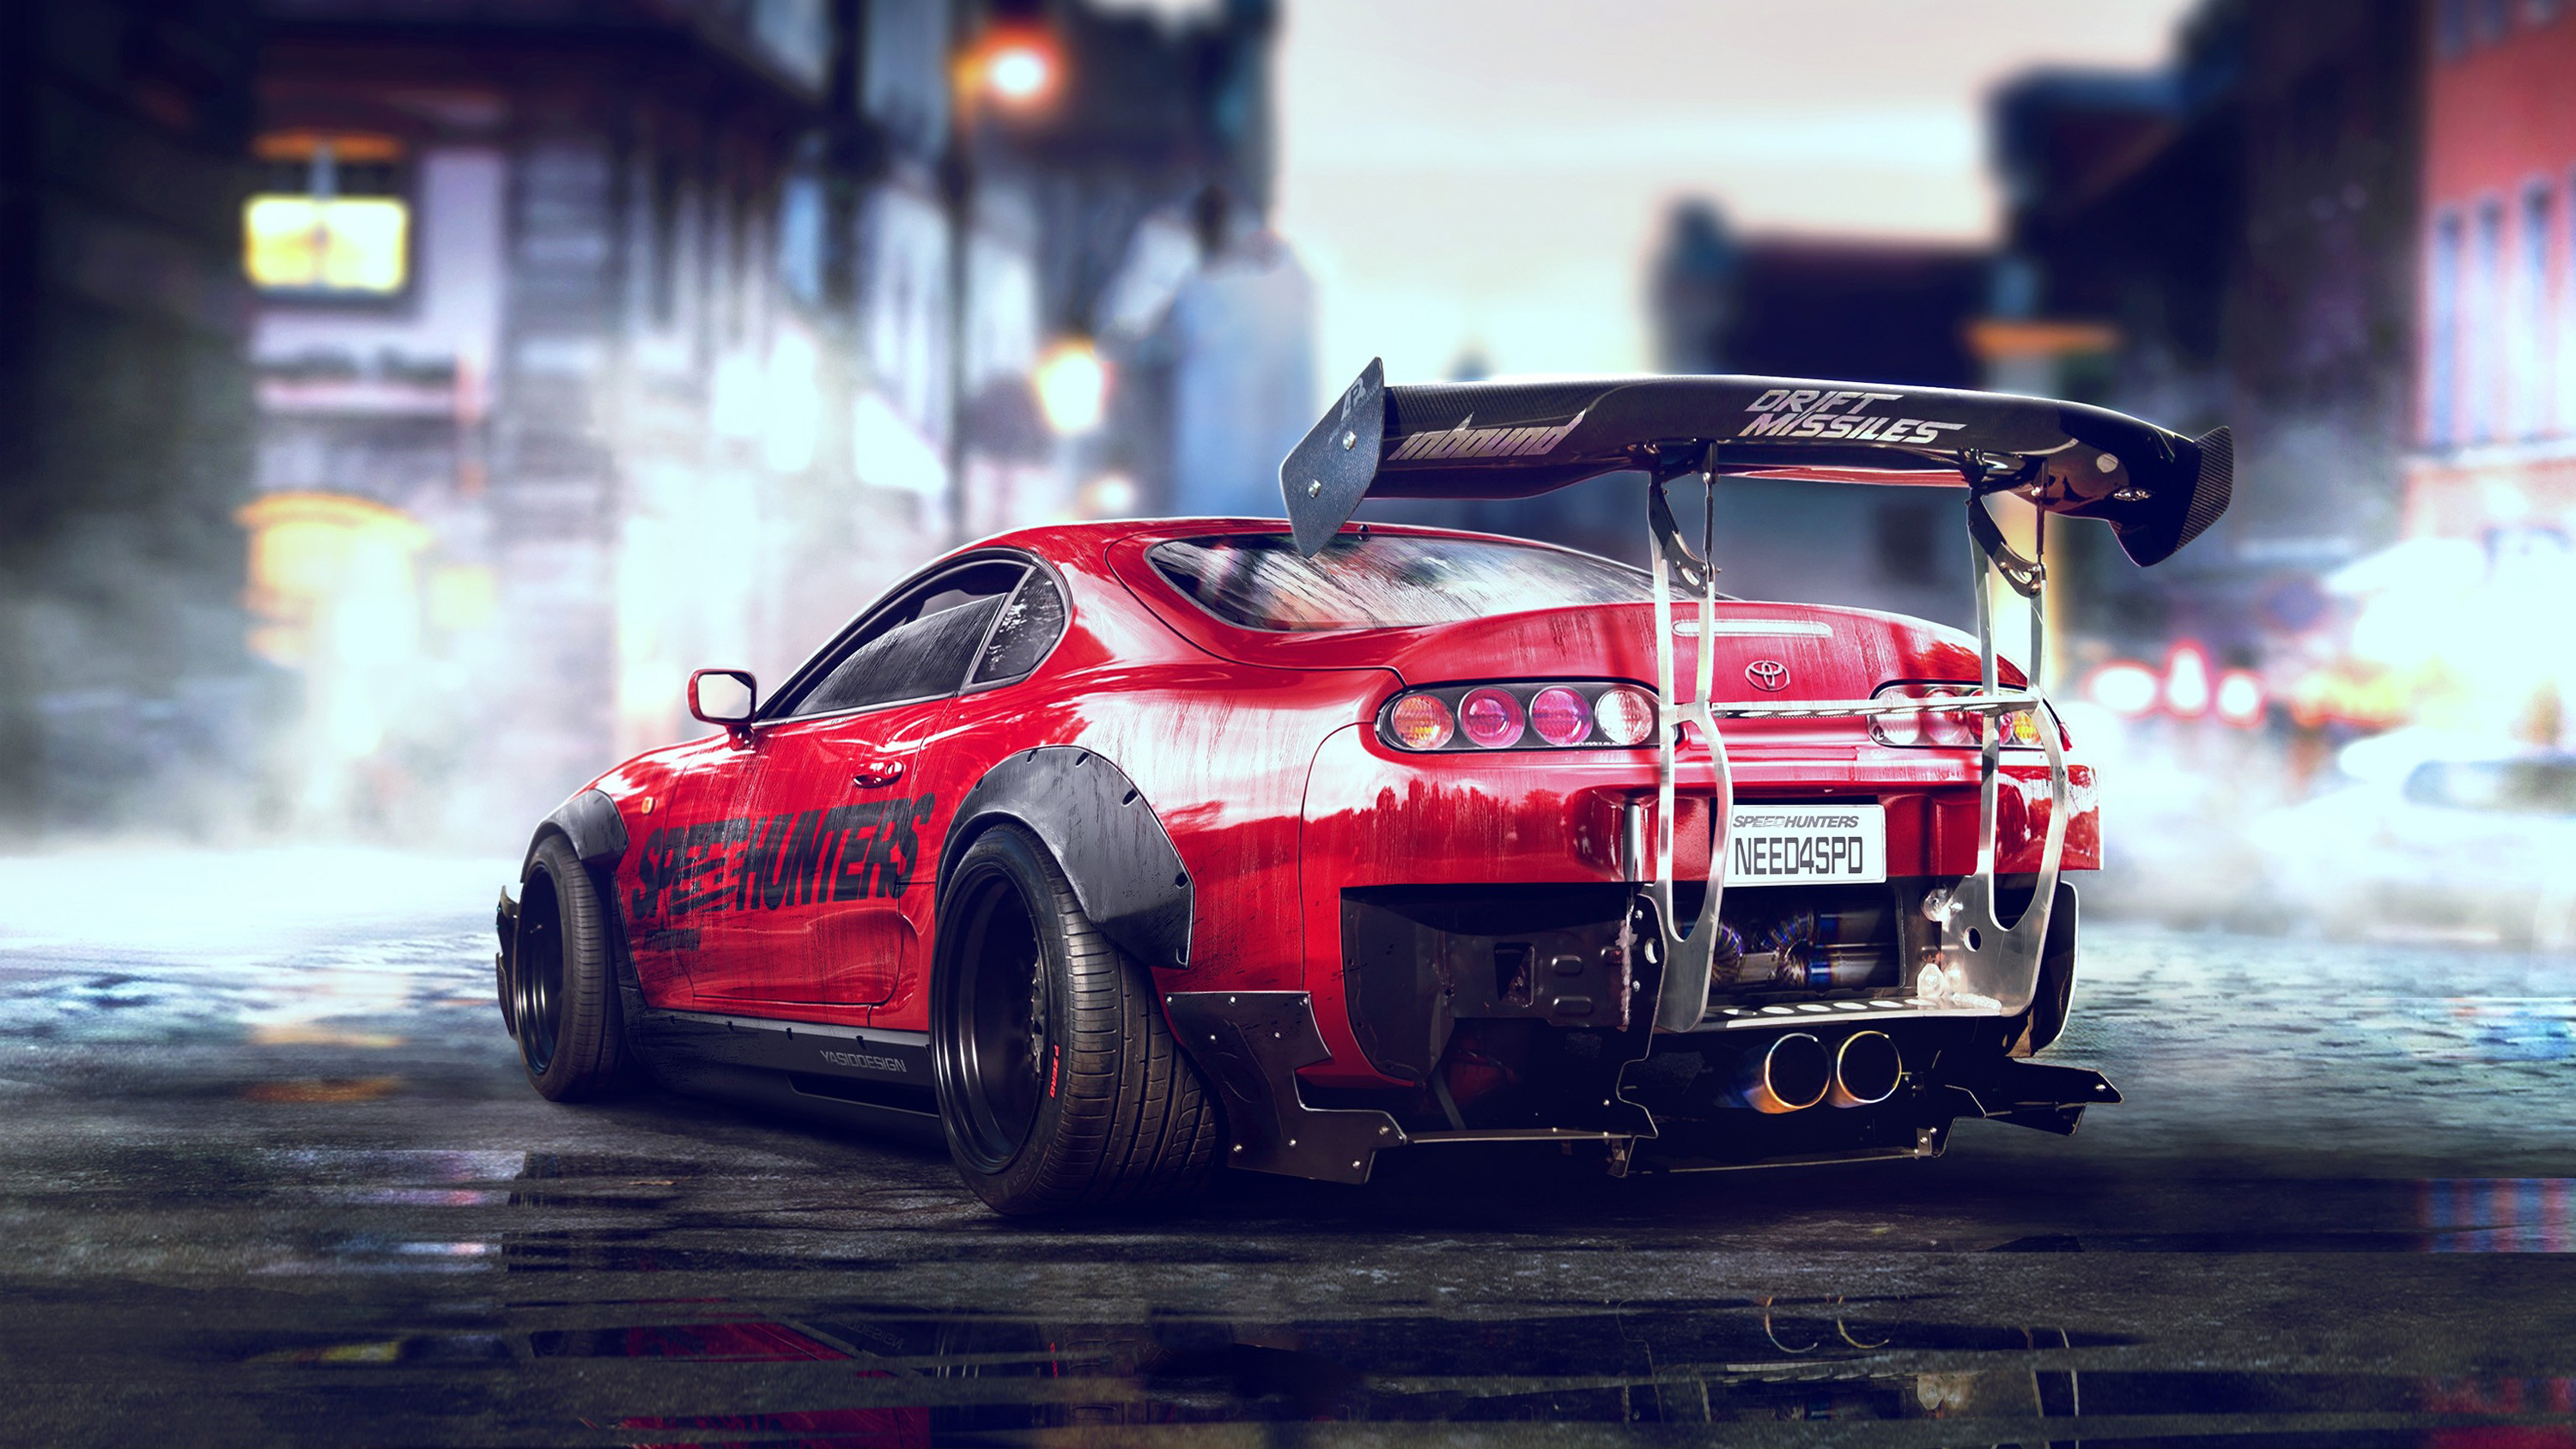 Toyota supra need for speed wallpaper hd car wallpapers for Need for speed wallpaper